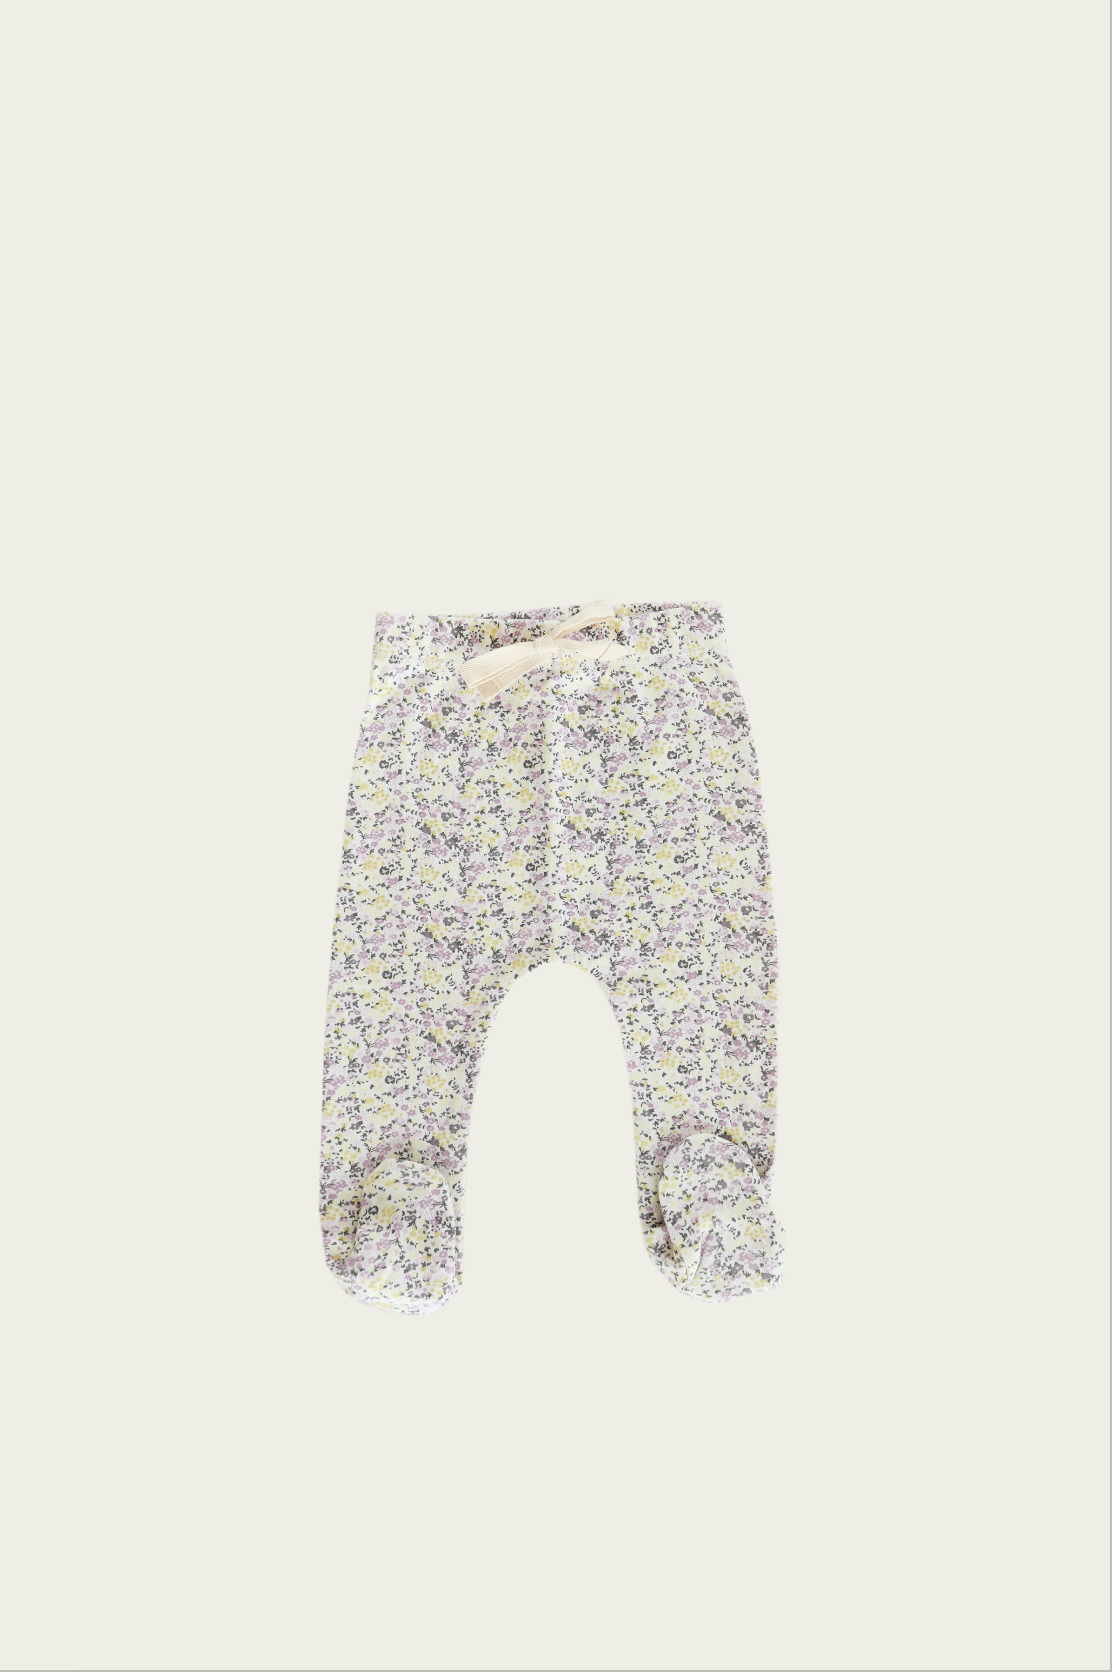 FOOTED PANT - SUMMER FLORAL - Carousel